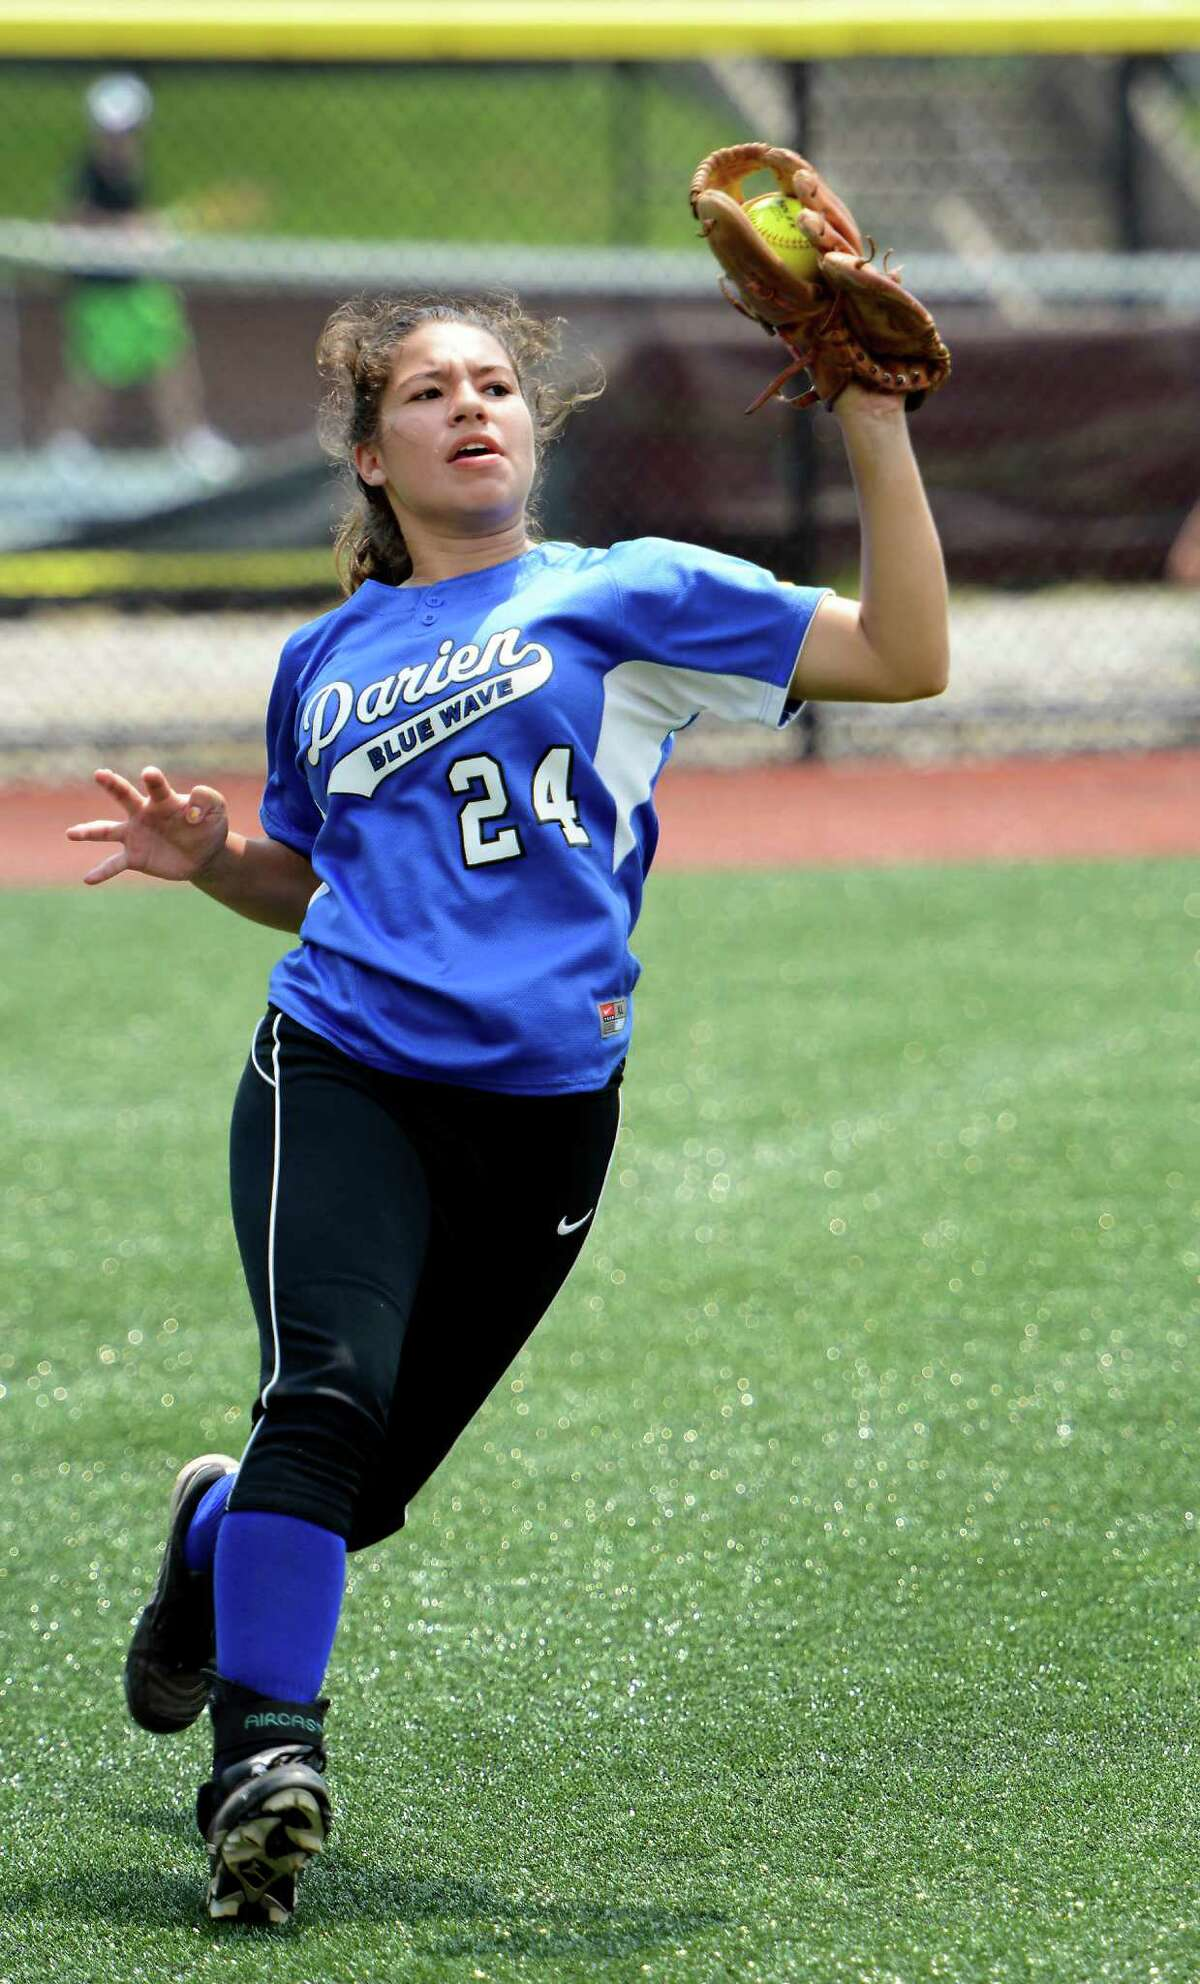 Darien High School left fielder Alexandra Aparicio catches a fly ball in the FCIAC Softball Championship game vs Westhill High School at Sacred Heart University, Fairfield, CT. Saturday May, 26th, 2012.